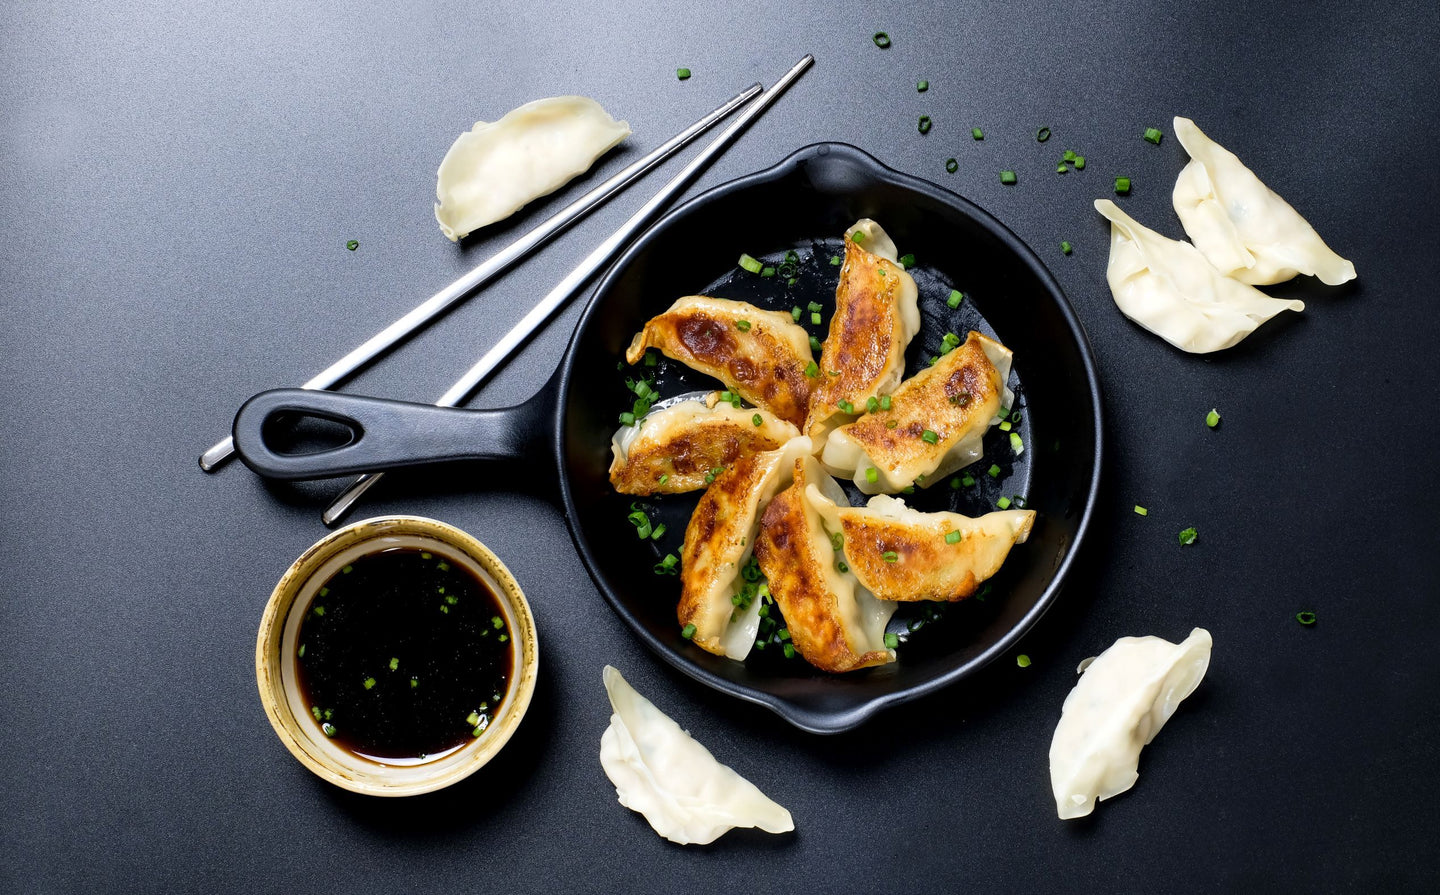 Chicken and Vegetable Gyoza